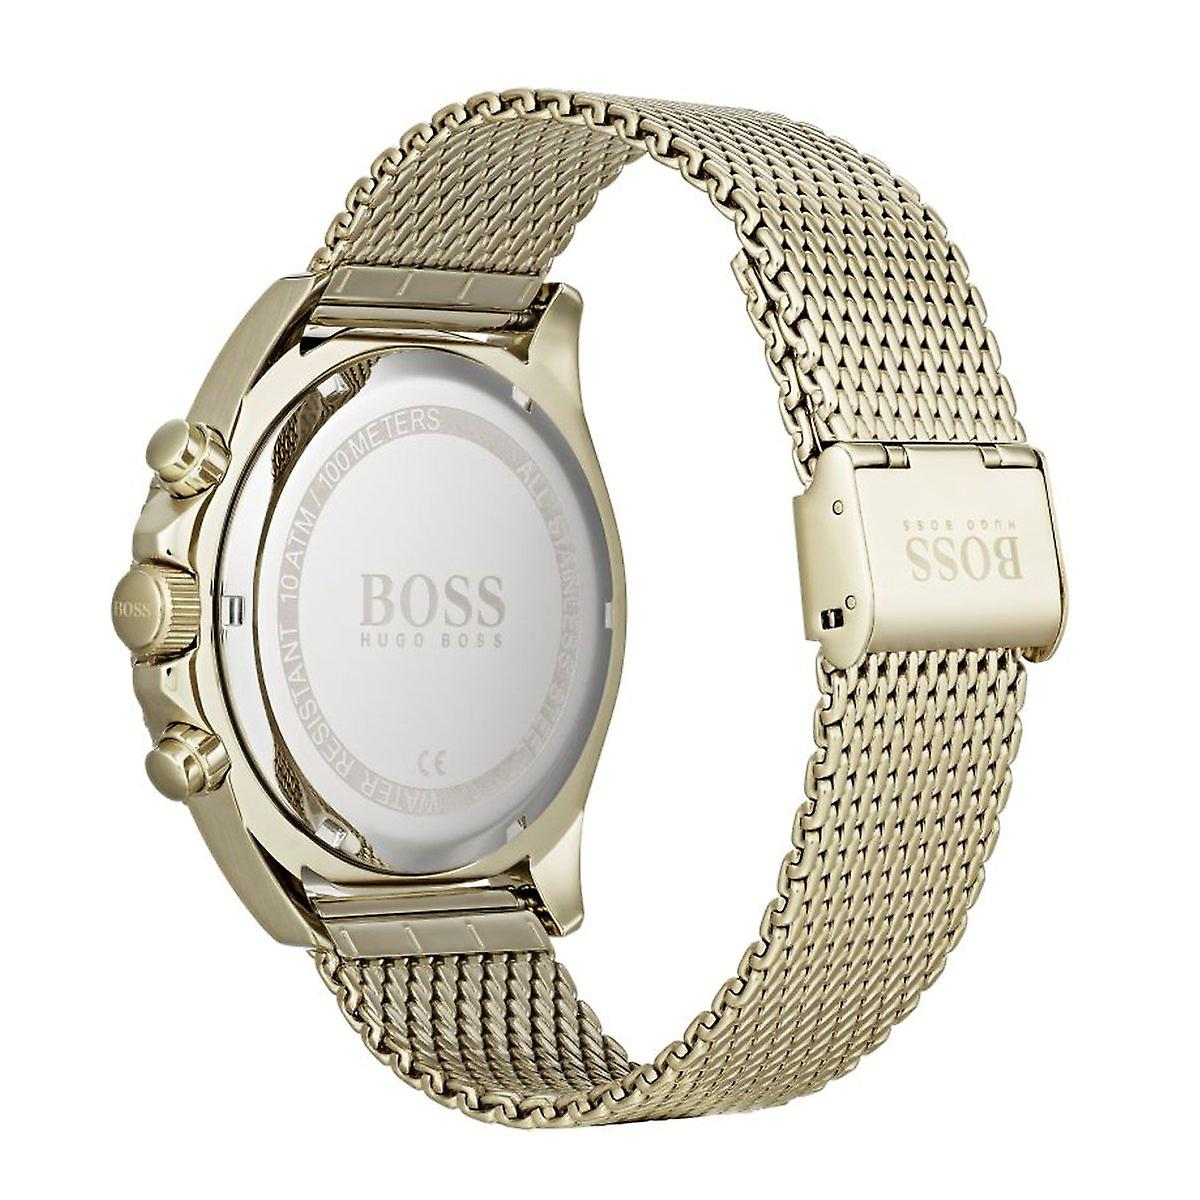 Hugo Boss 1513703 Contemporary Sport Men's Watch